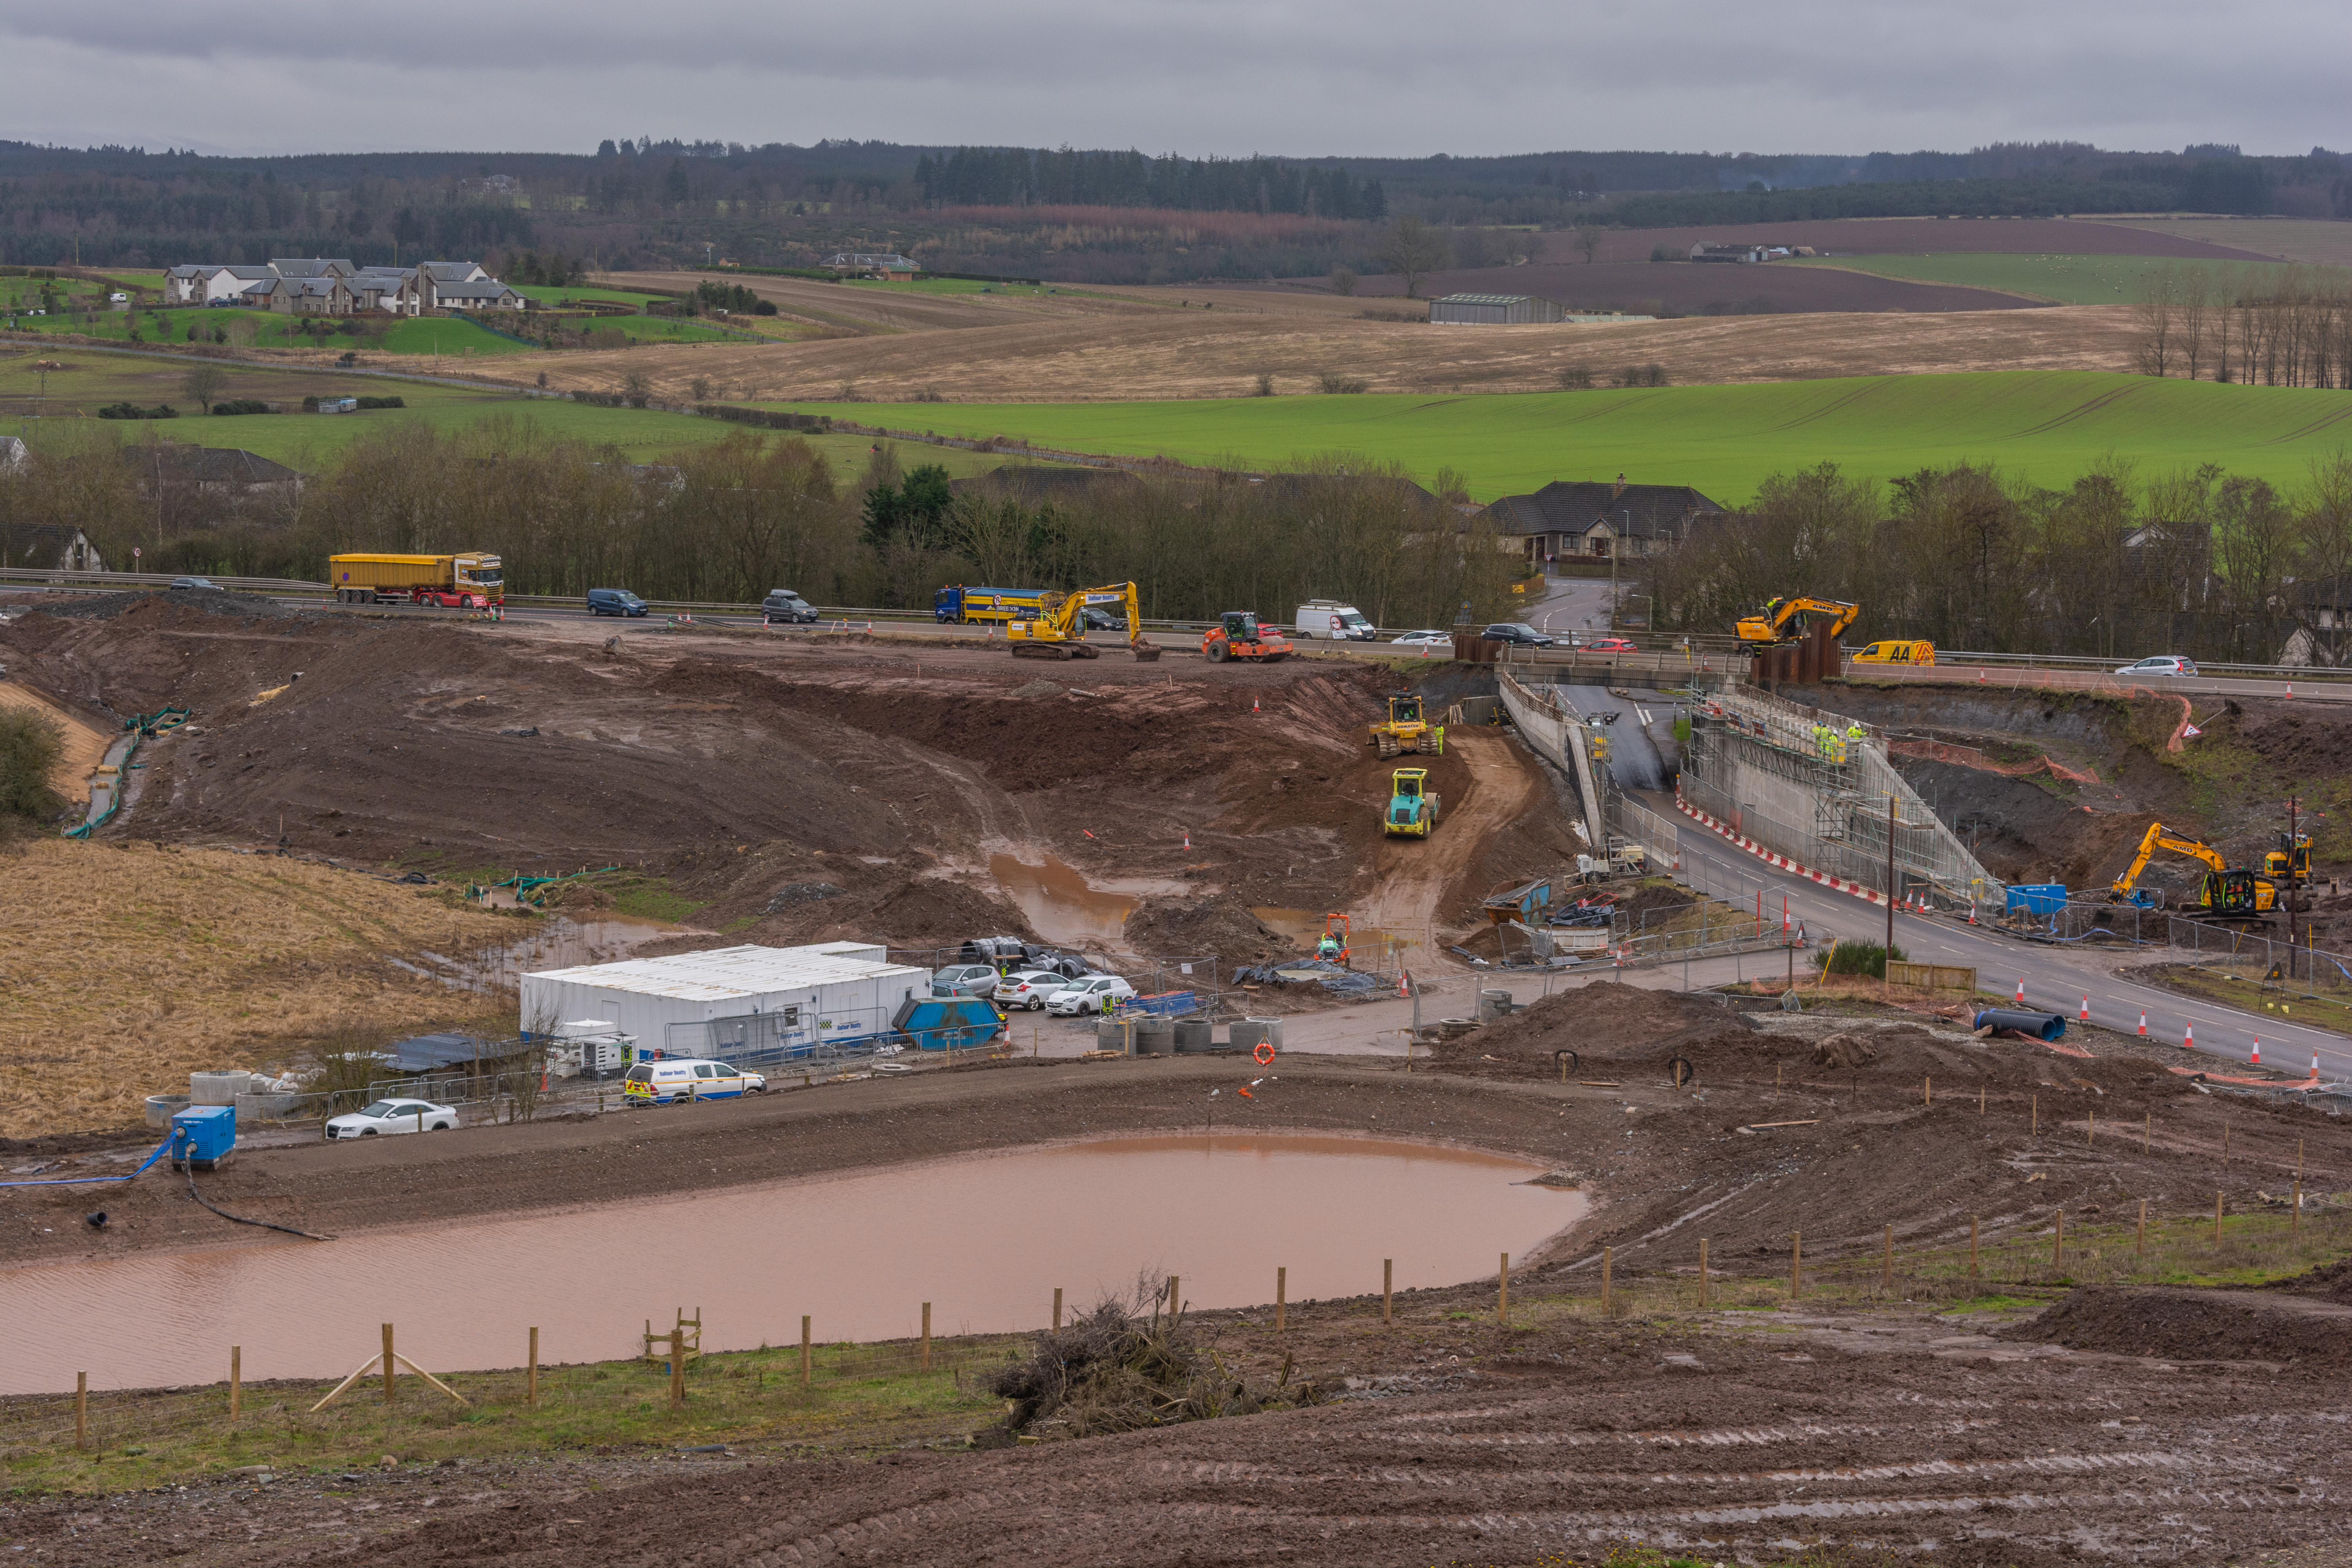 Earthwork operations being carried out at Hunters Lodge